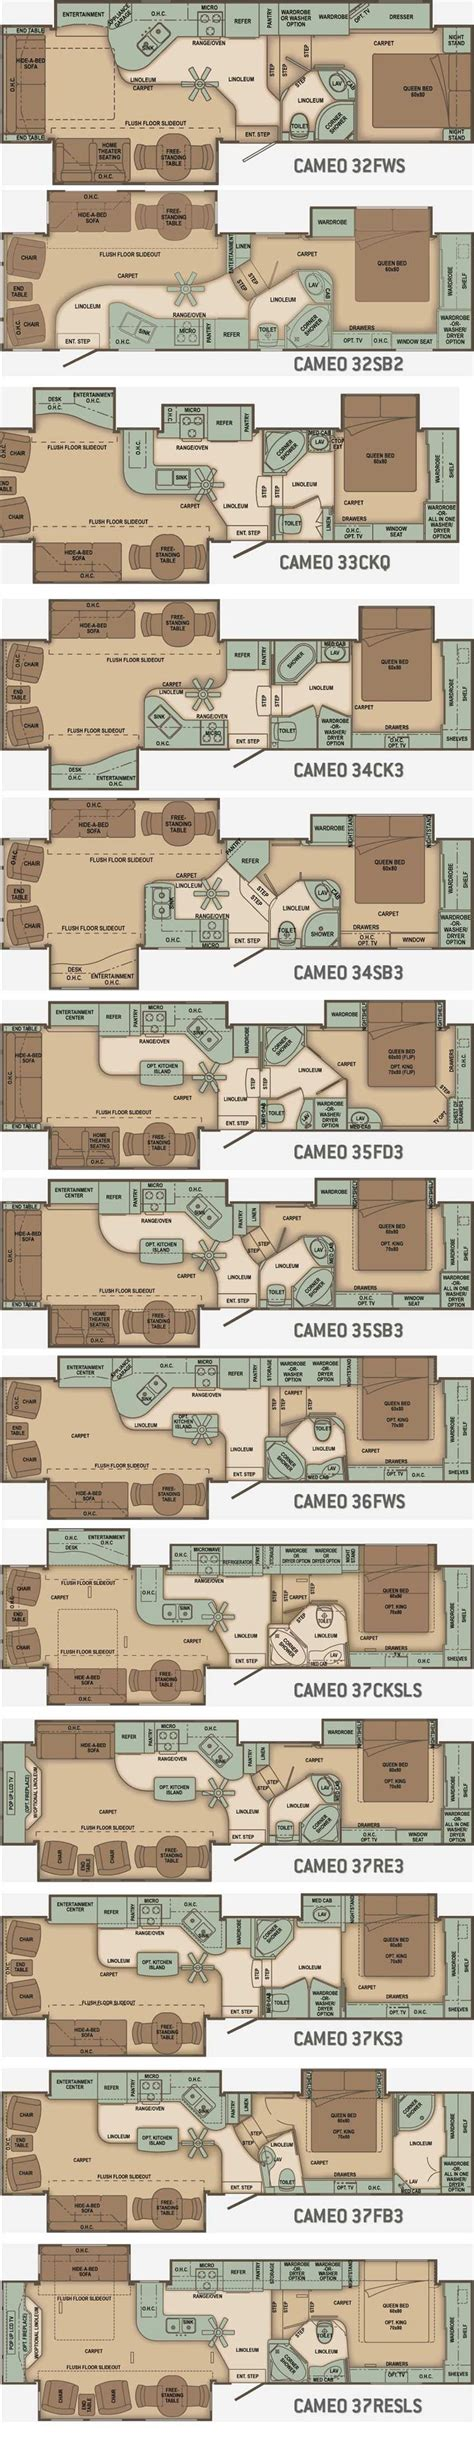 carriage 5th wheel floor plans 17 best ideas about fifth wheel on pinterest fifth wheel